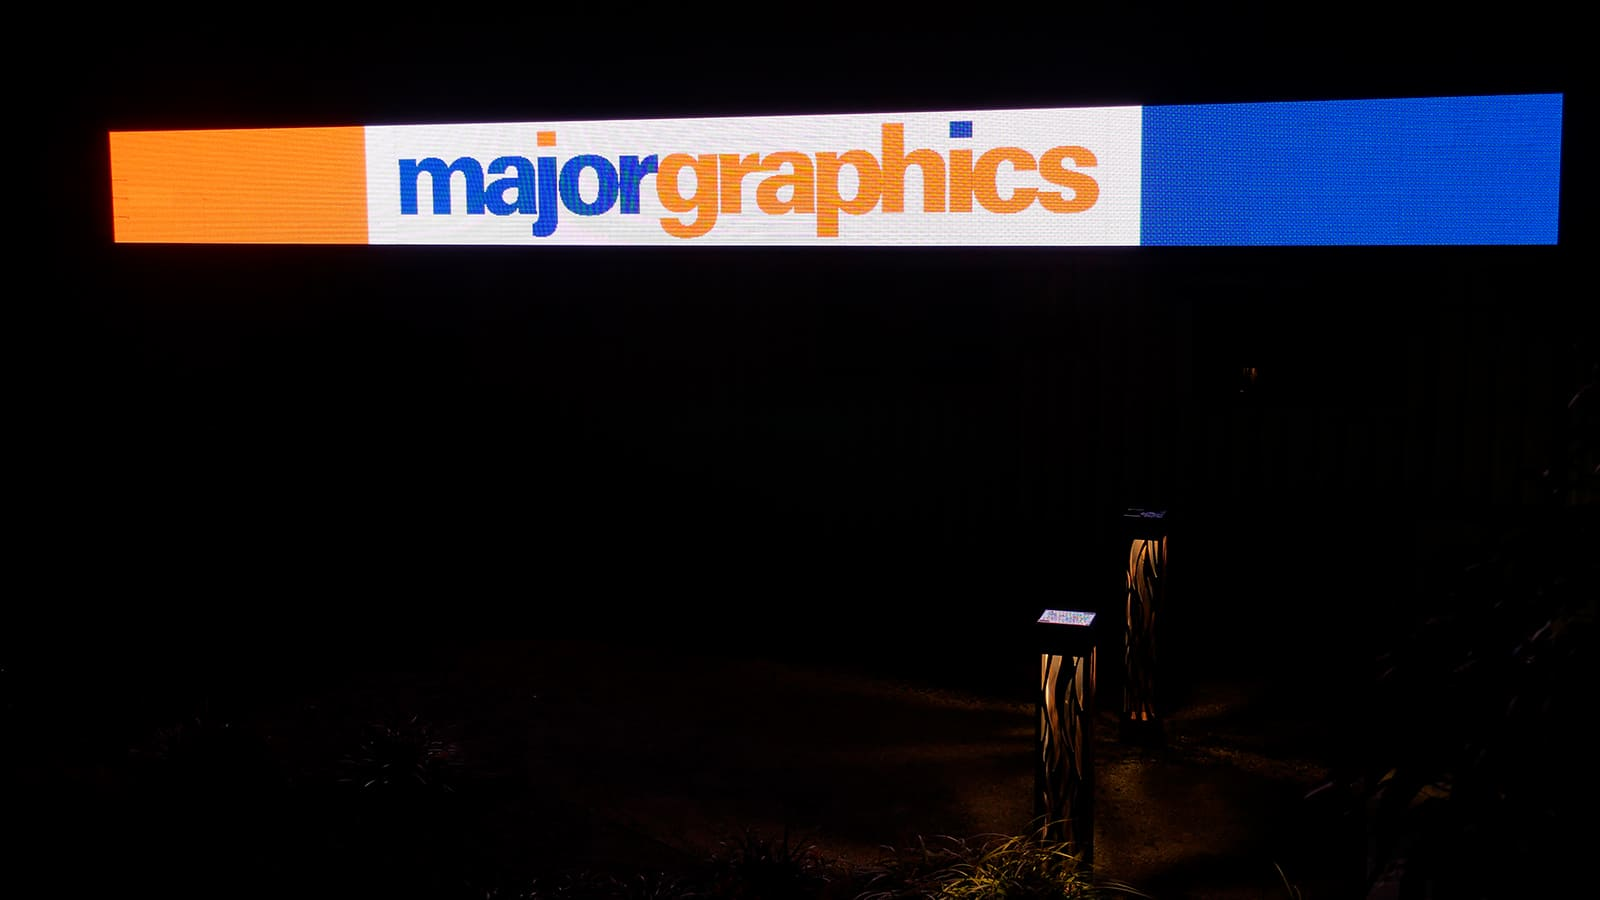 led-screens-major-graphics-1